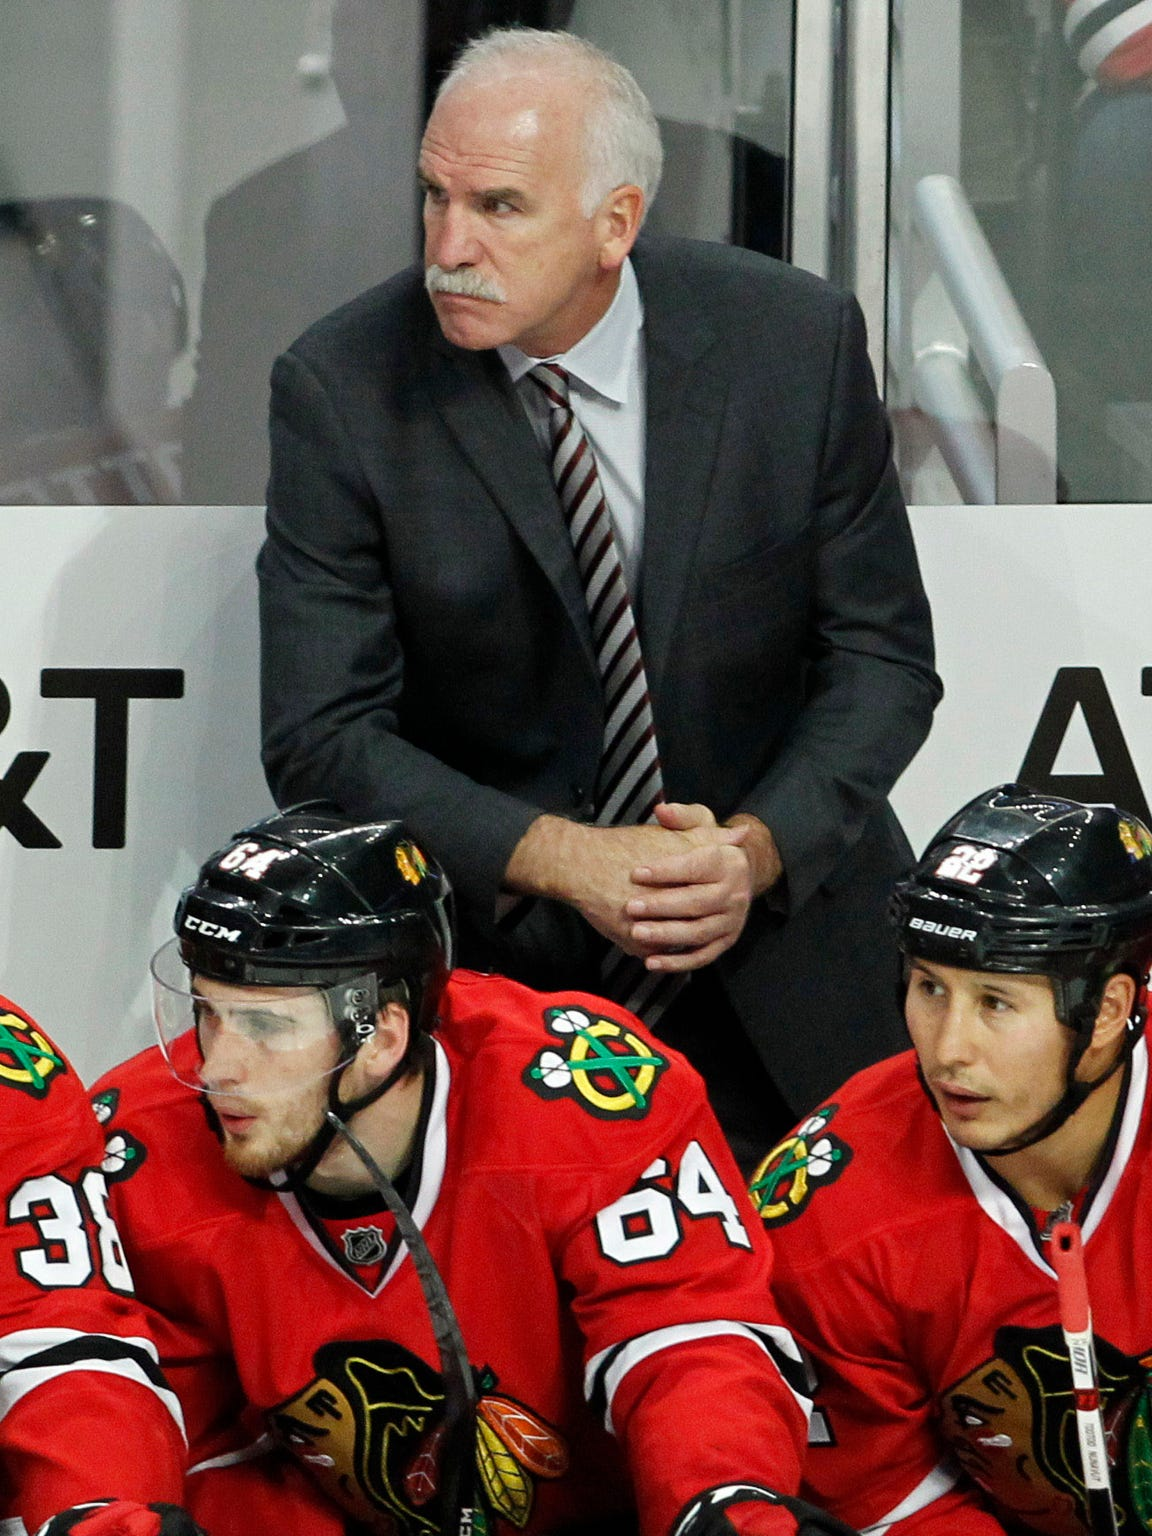 Joel Quenneville has won three Stanley Cups with the